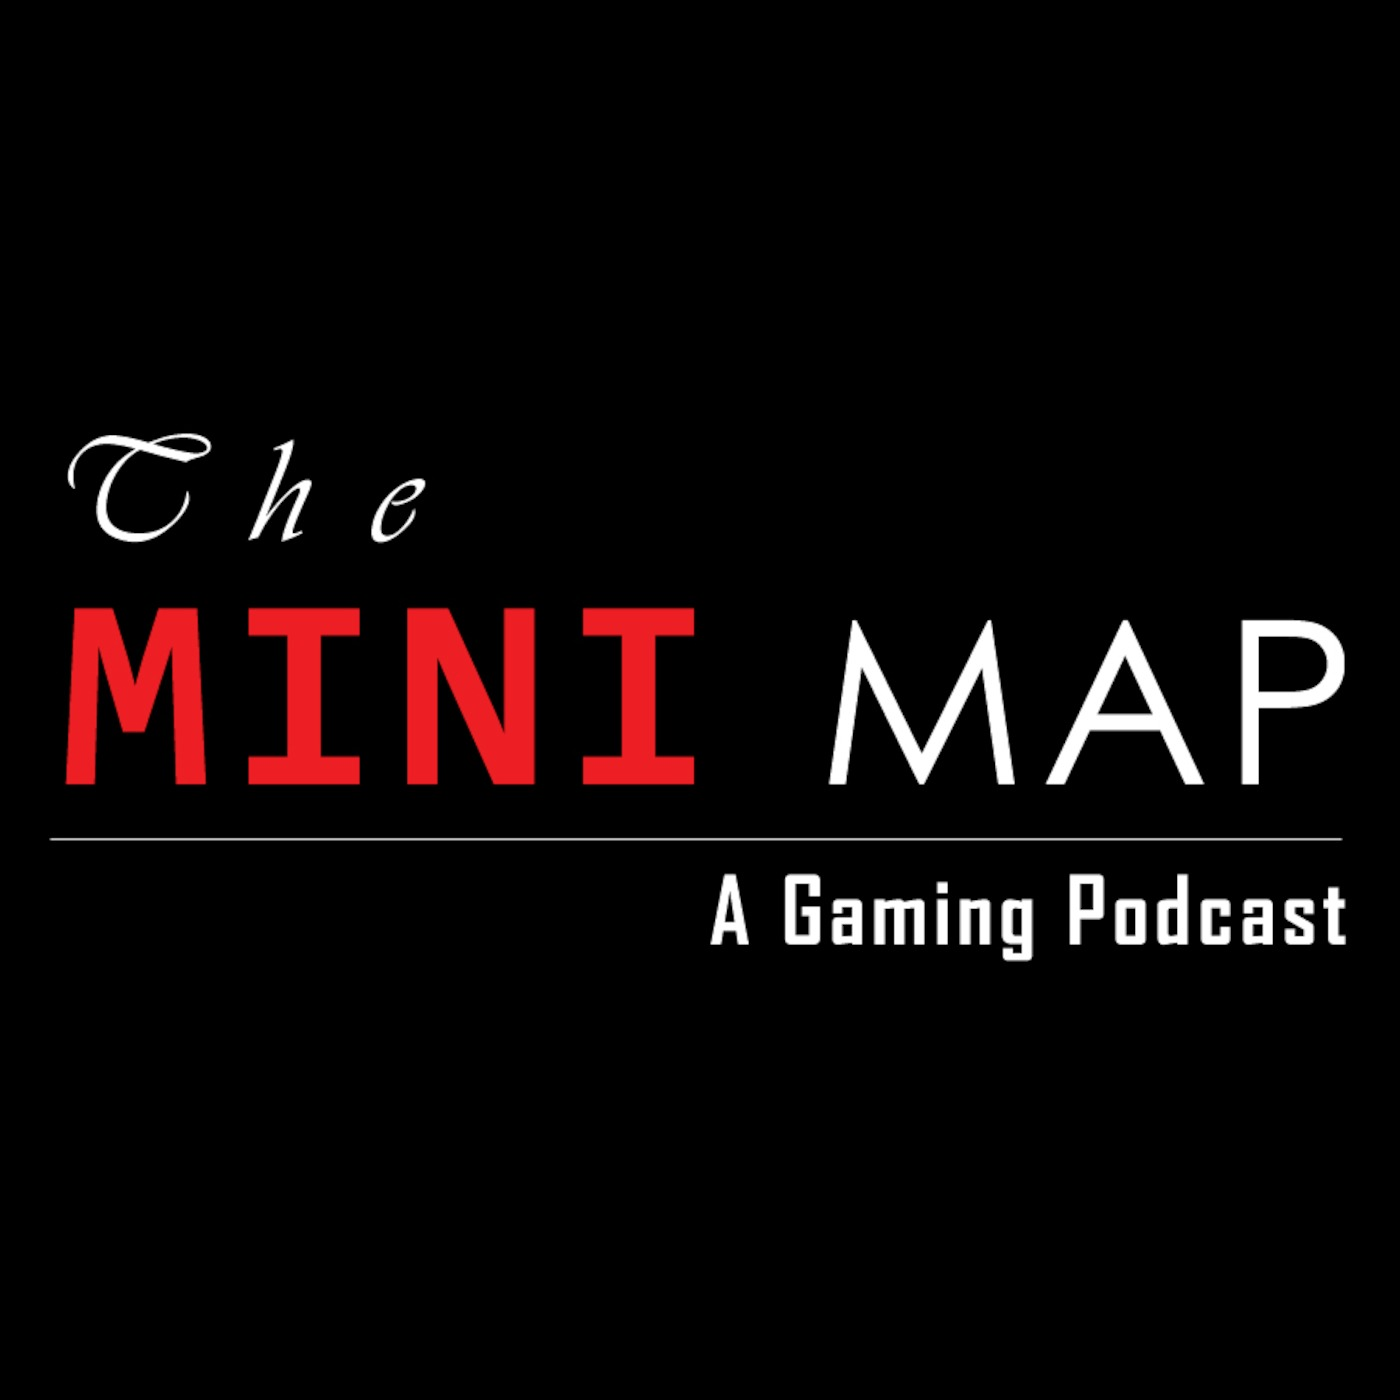 The Mini Map: A Gaming Podcast